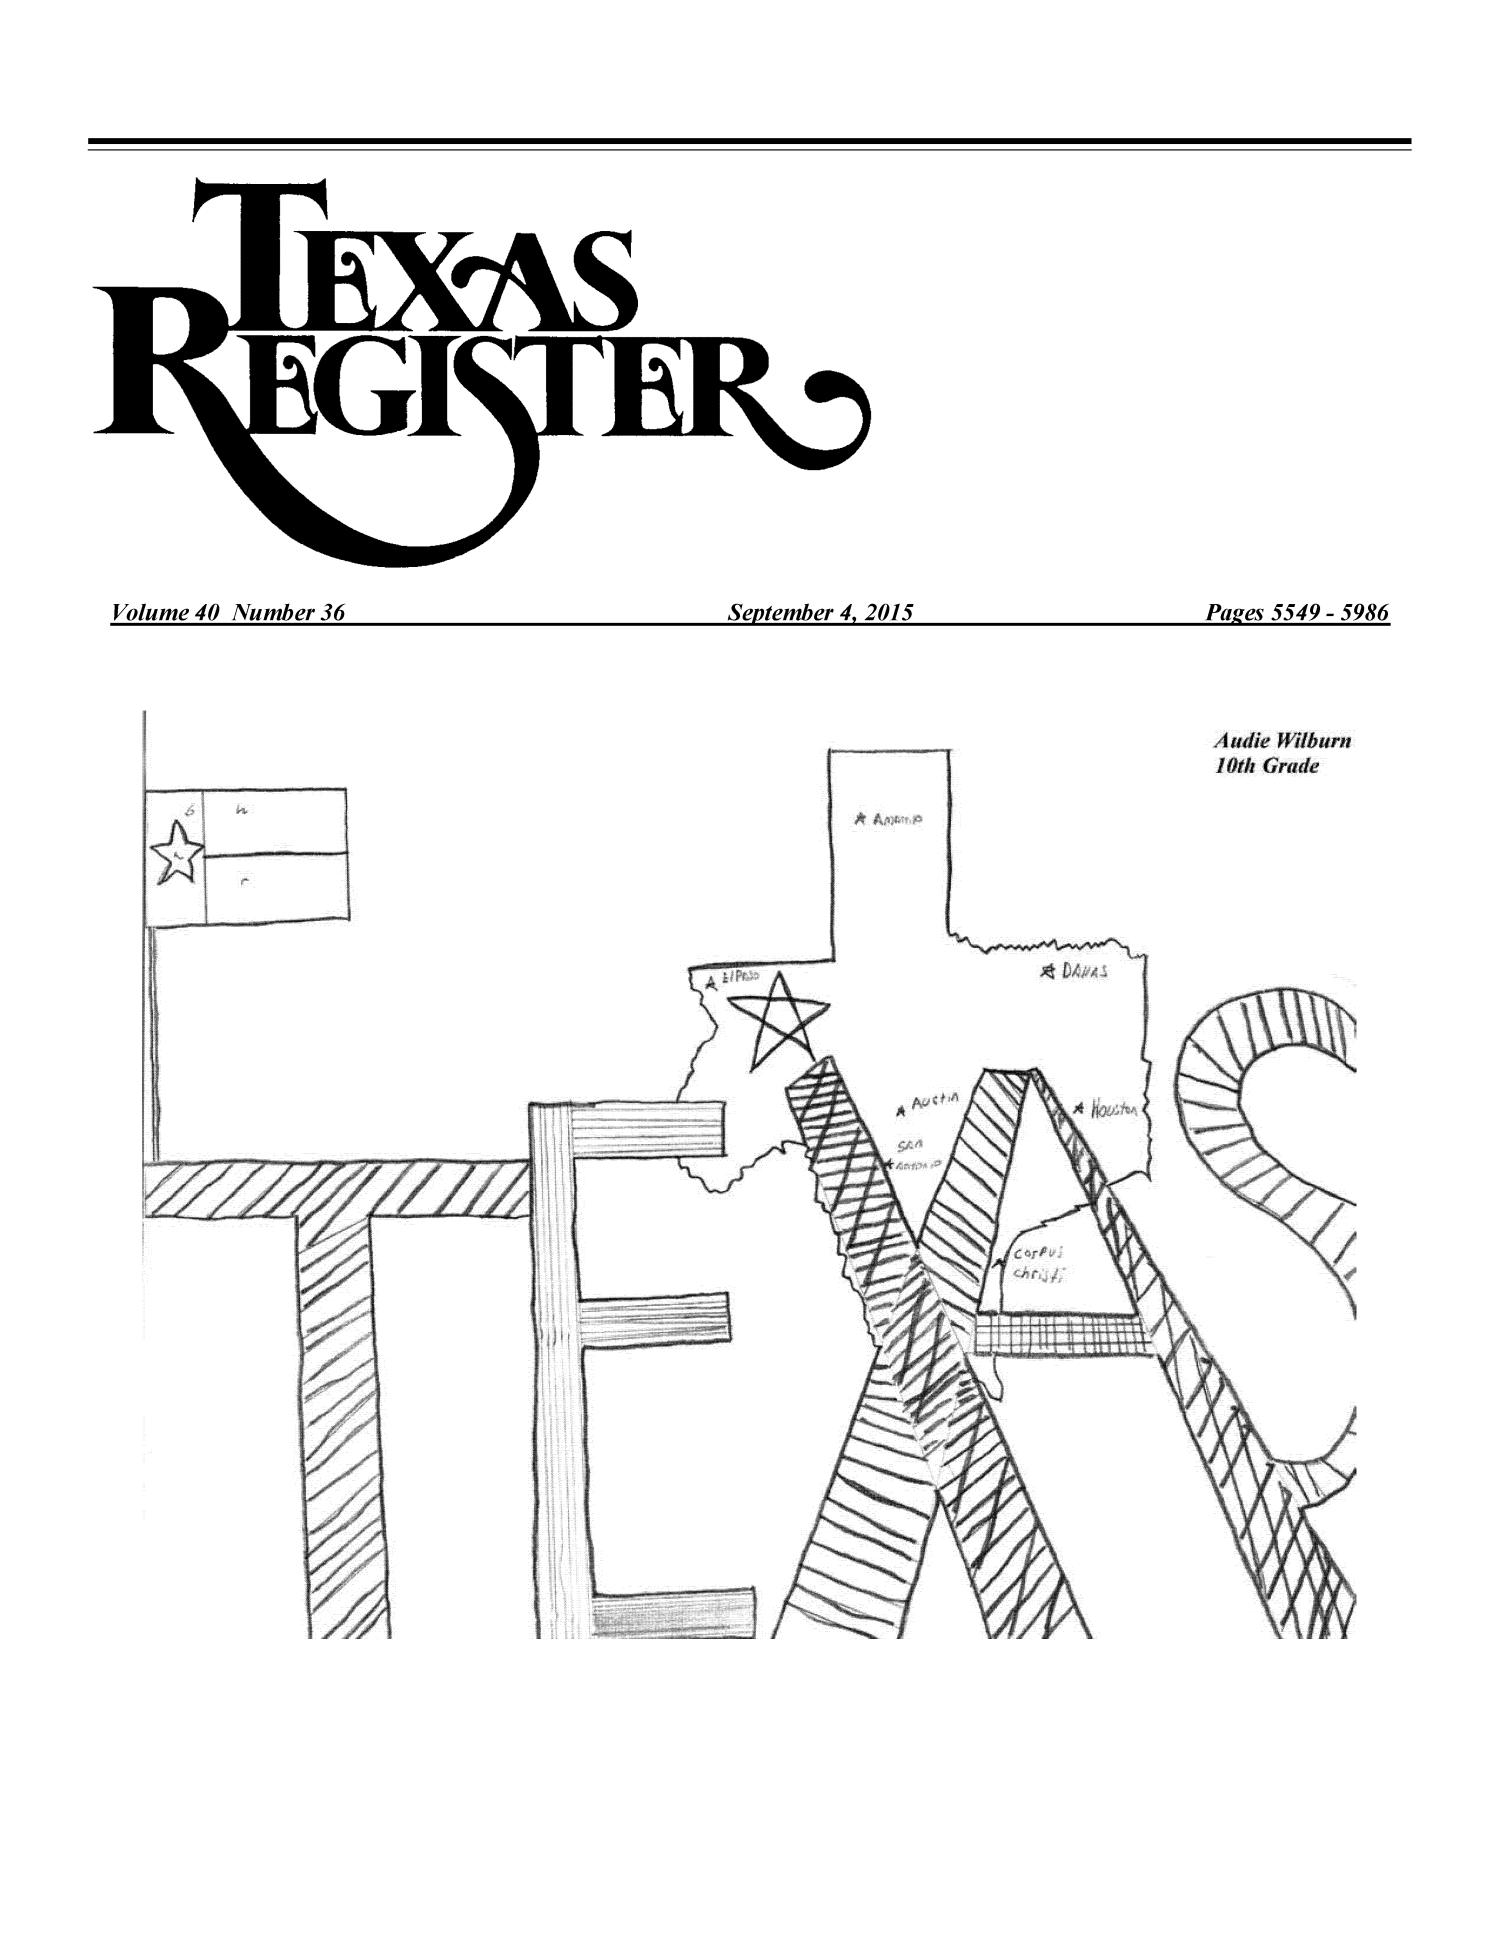 Texas Register, Volume 40, Number 36, Pages 5549-5986